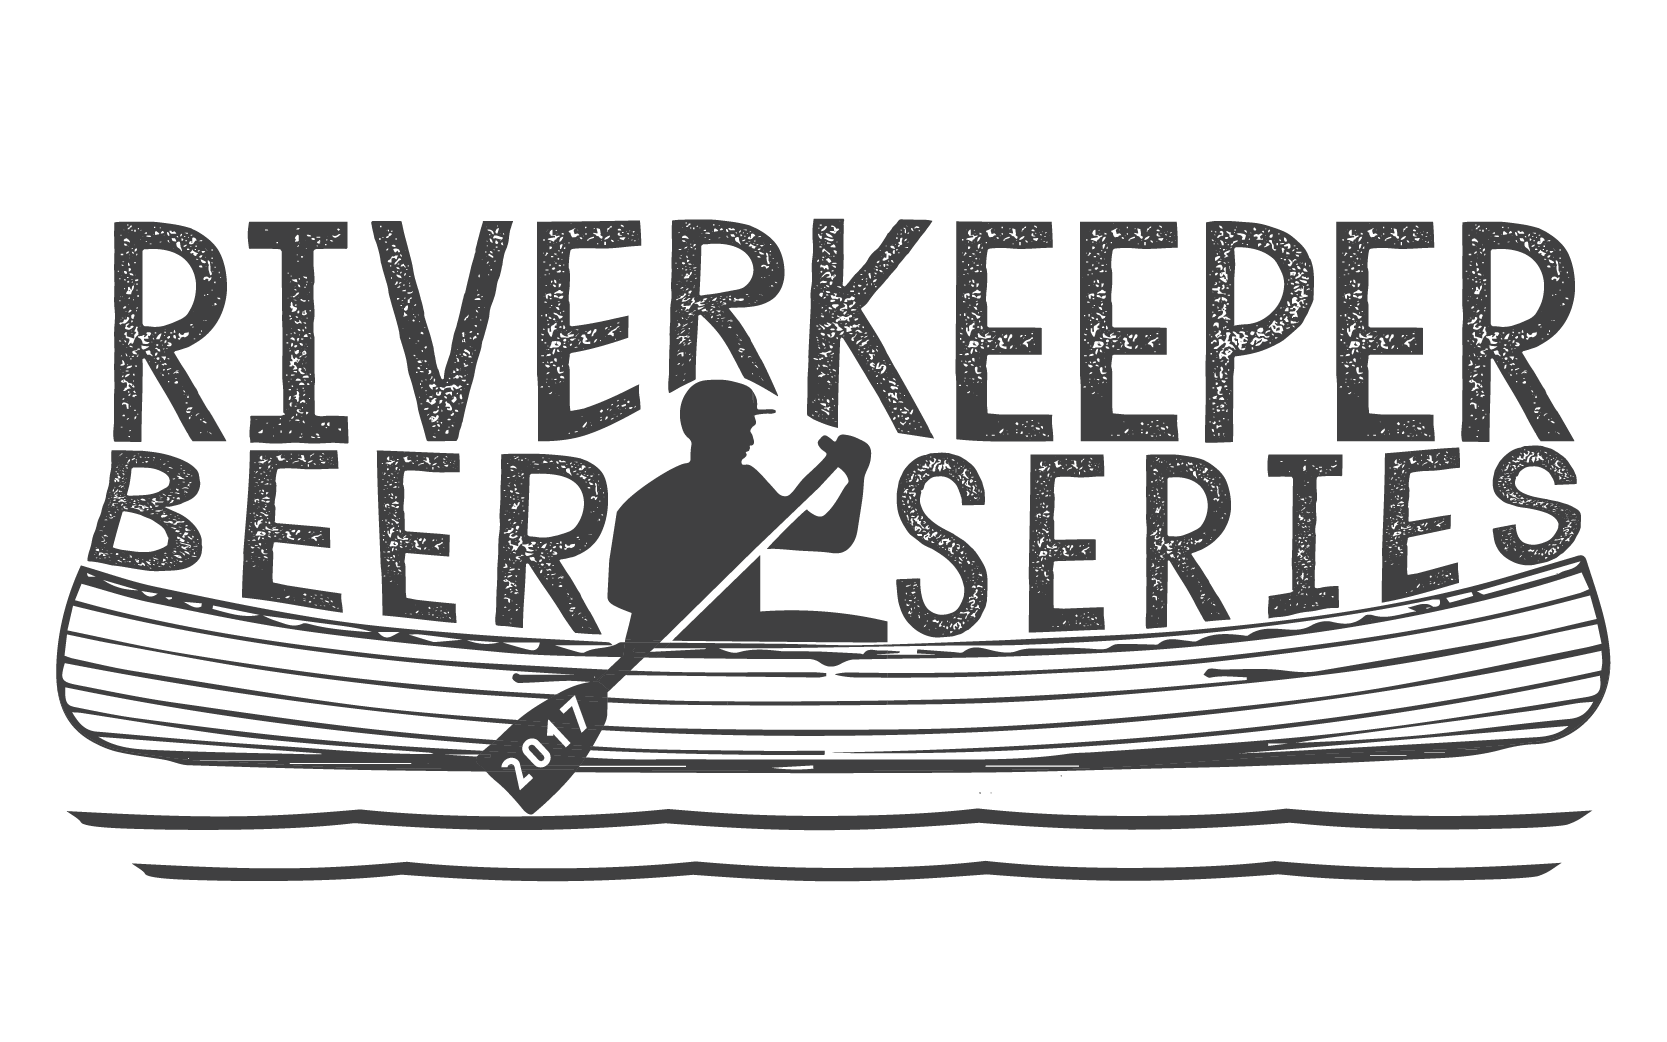 Riverkeeper Beer Series Launches with River Float, Clean-up and ...